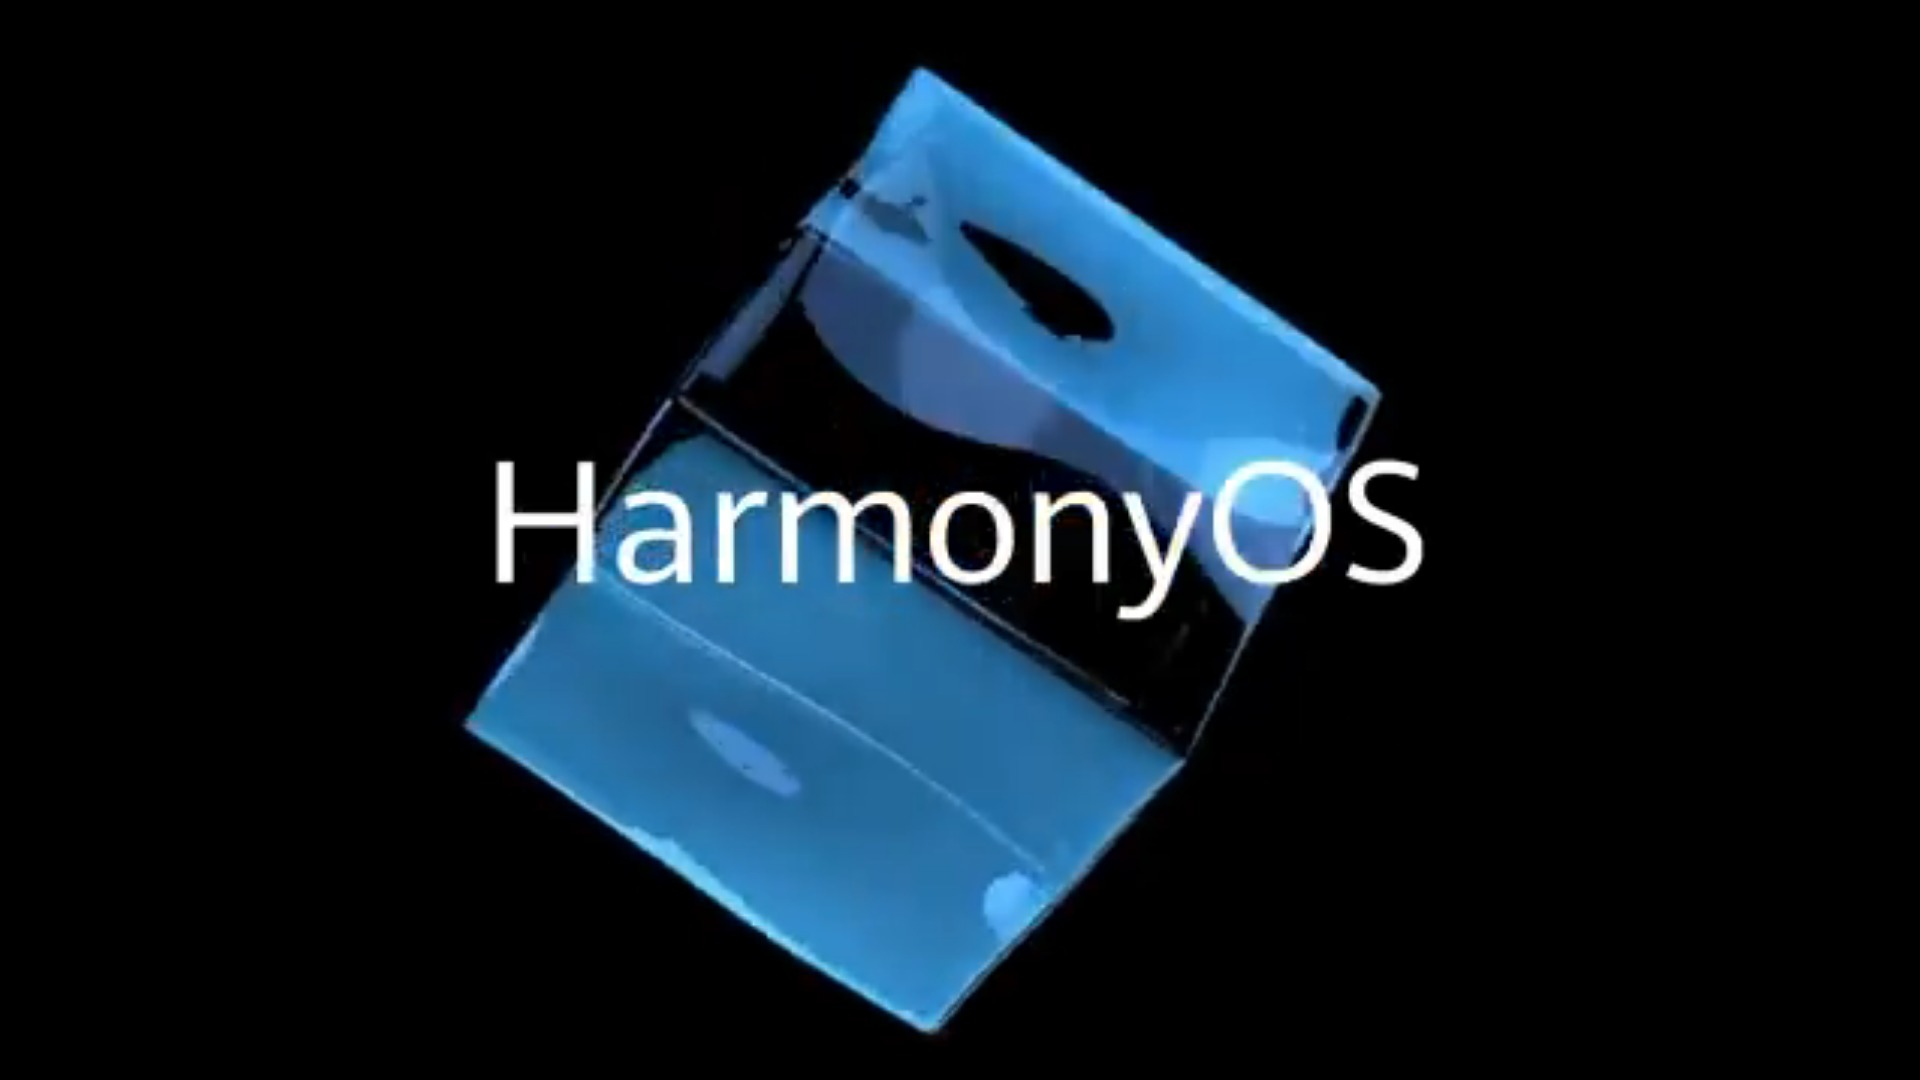 Sforum - Huawei_Mobile_ @ HuaweiMobile__Twi Huawei's latest technology information page Huawei will update HarmonyOS for its smartwatch devices.